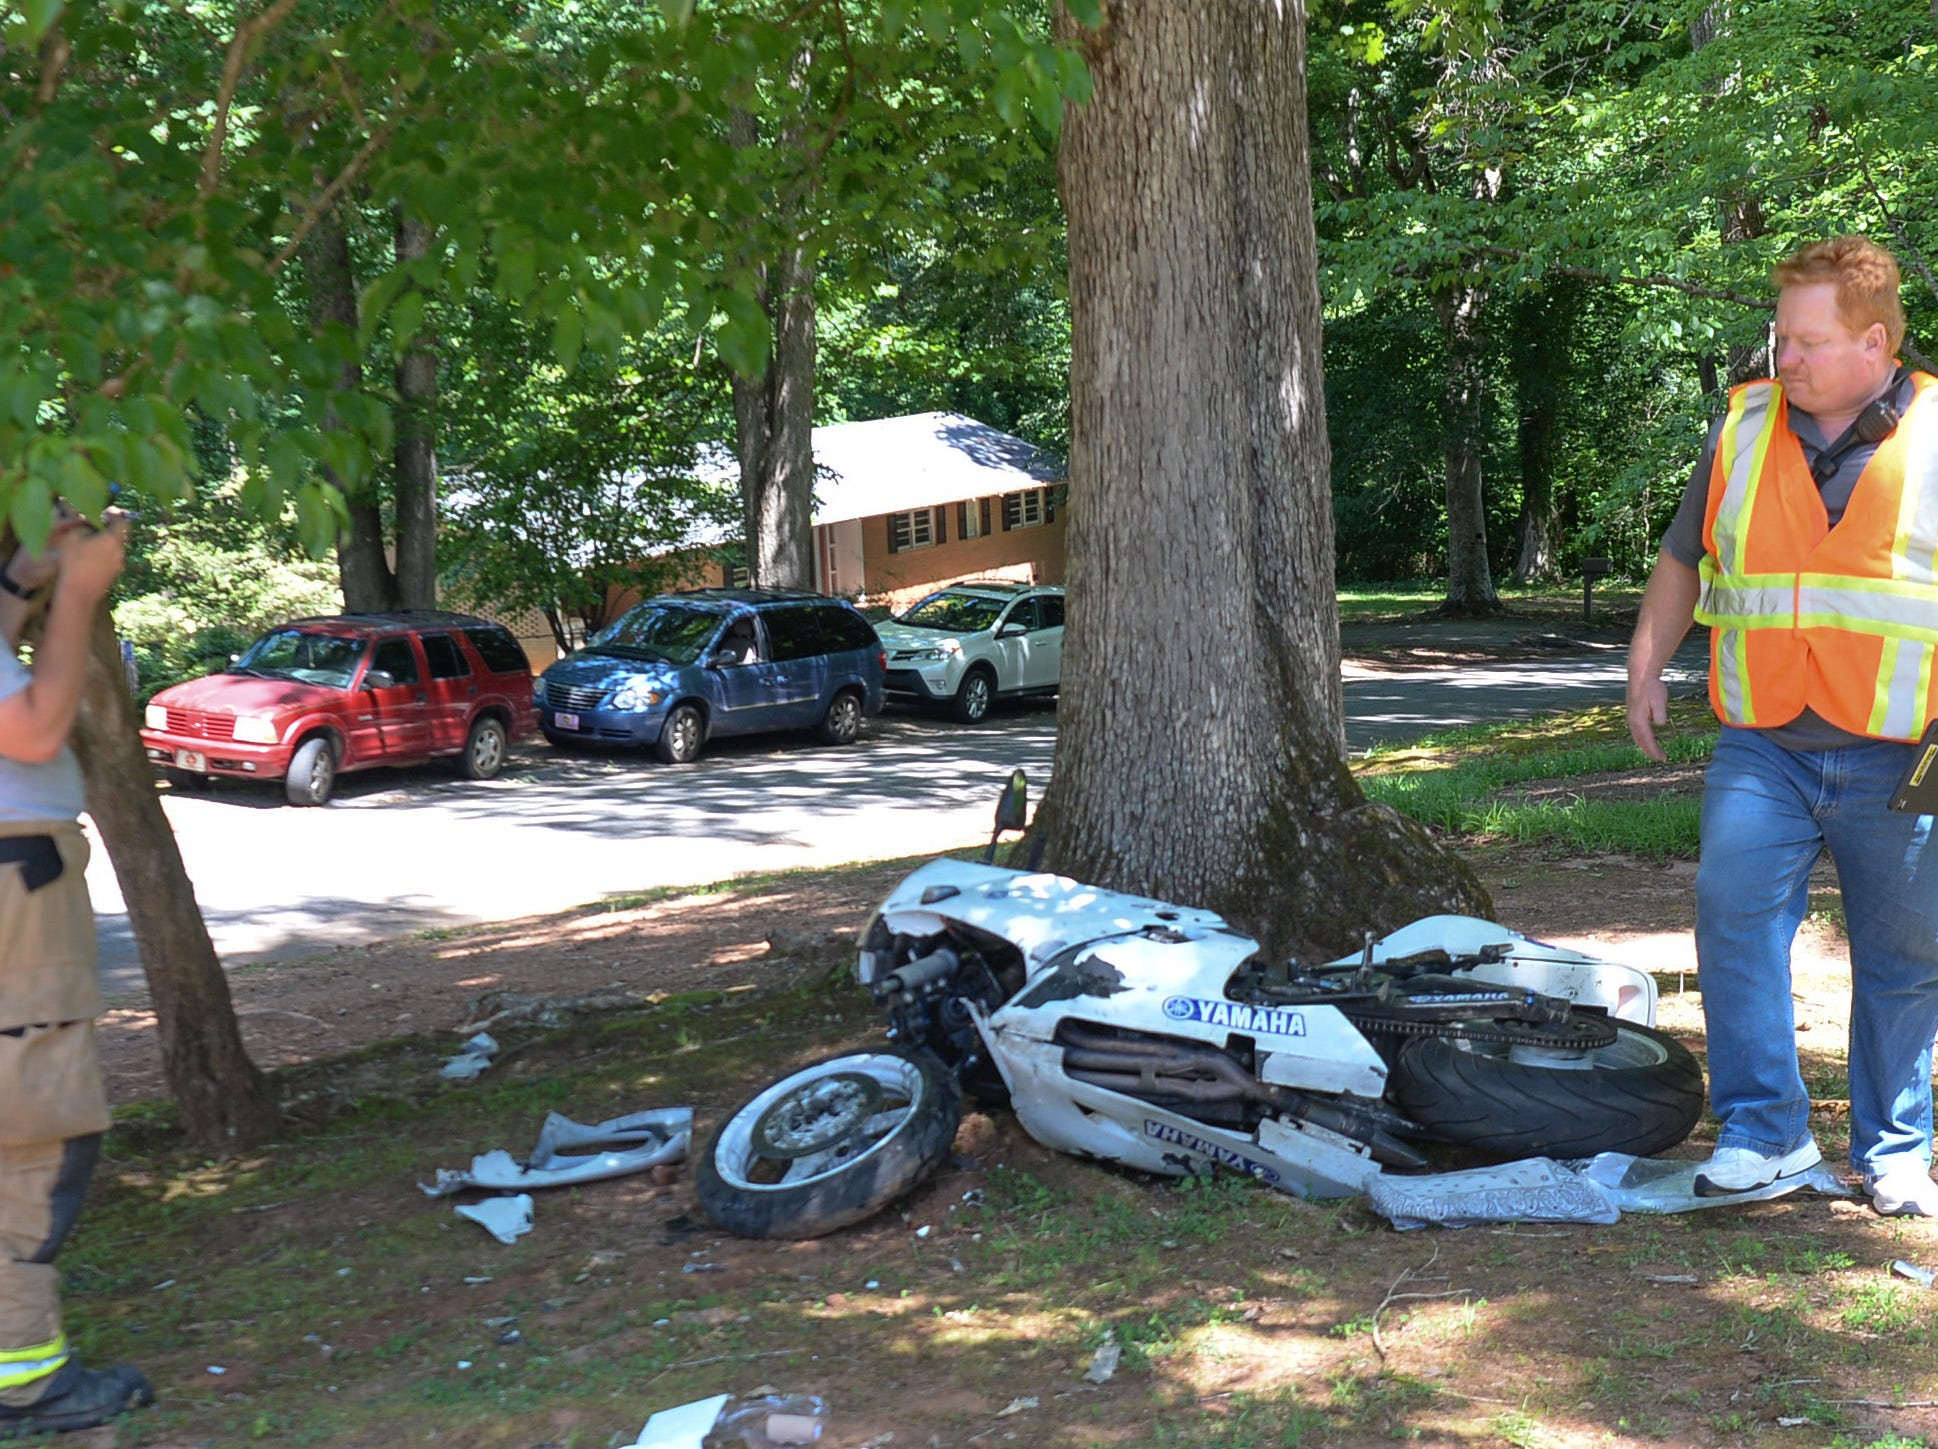 Emergency workers look over a young woman who crashed her motorcycle into a tree in Anderson Tuesday. Homeland Park firemen and Medshore also responded to the accident.